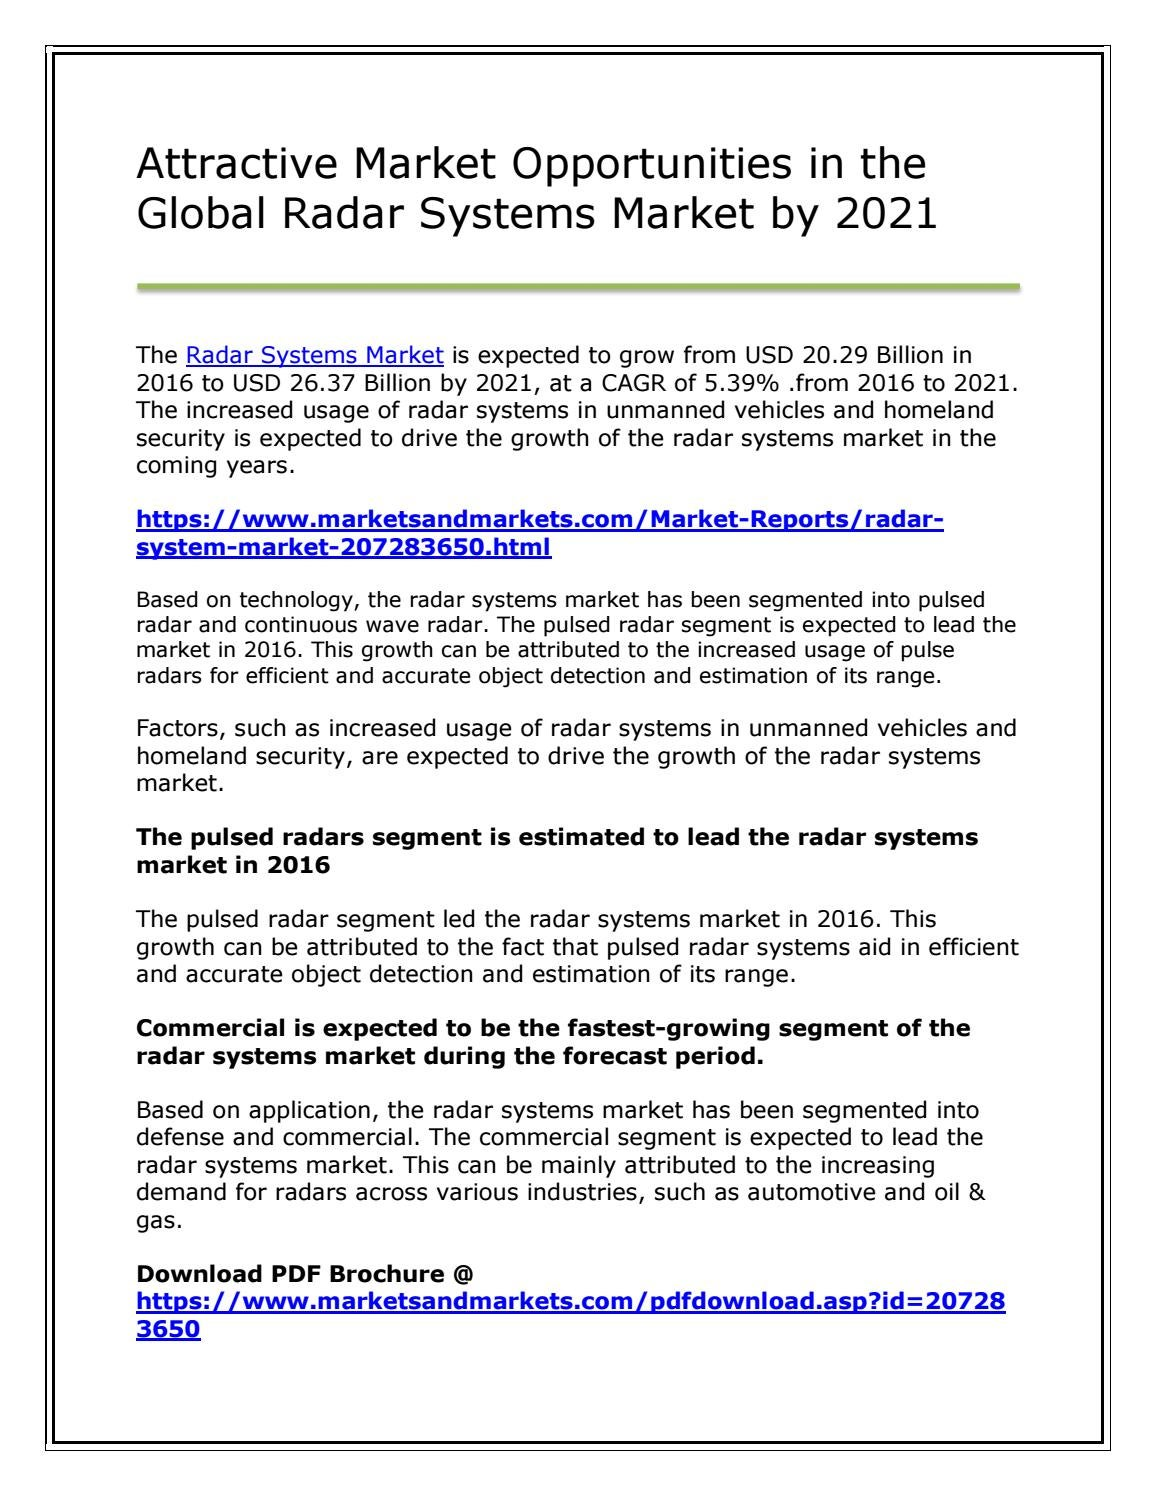 Attractive Market Opportunities in the Global Radar Systems Market